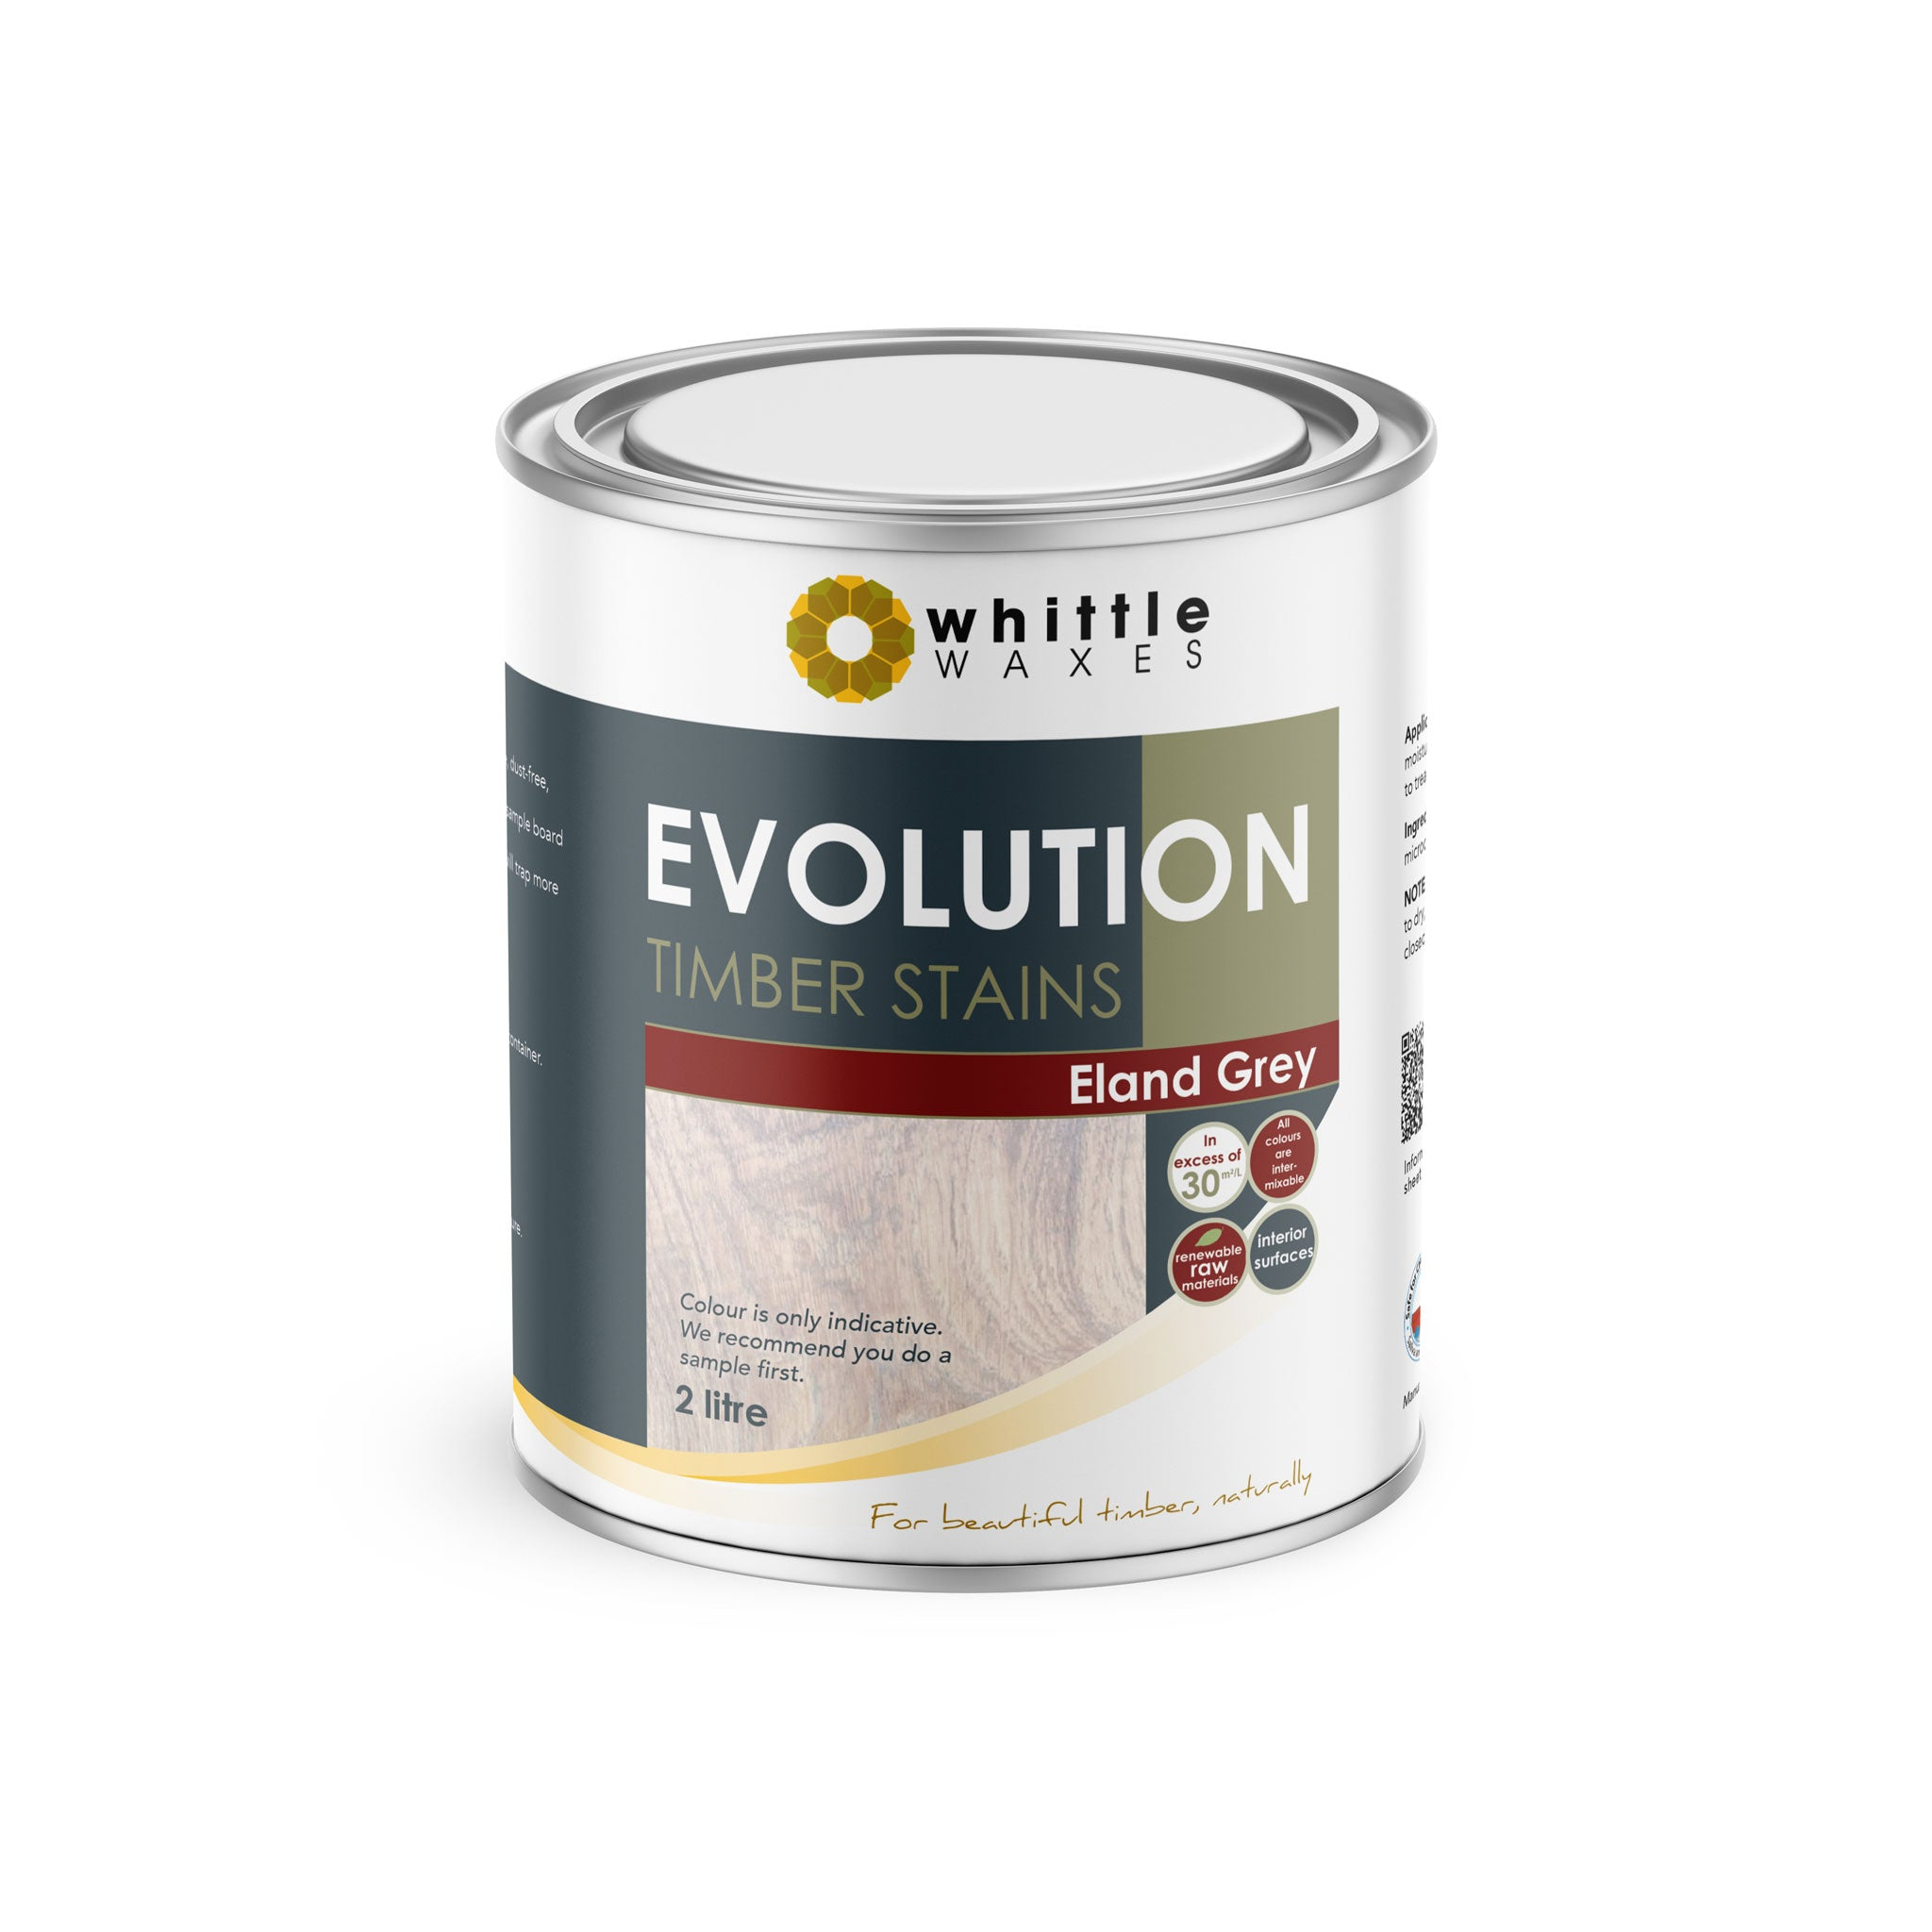 Whittle Waxes Evolution Colours (Eland Grey) - quality timber stain - 2 Litre